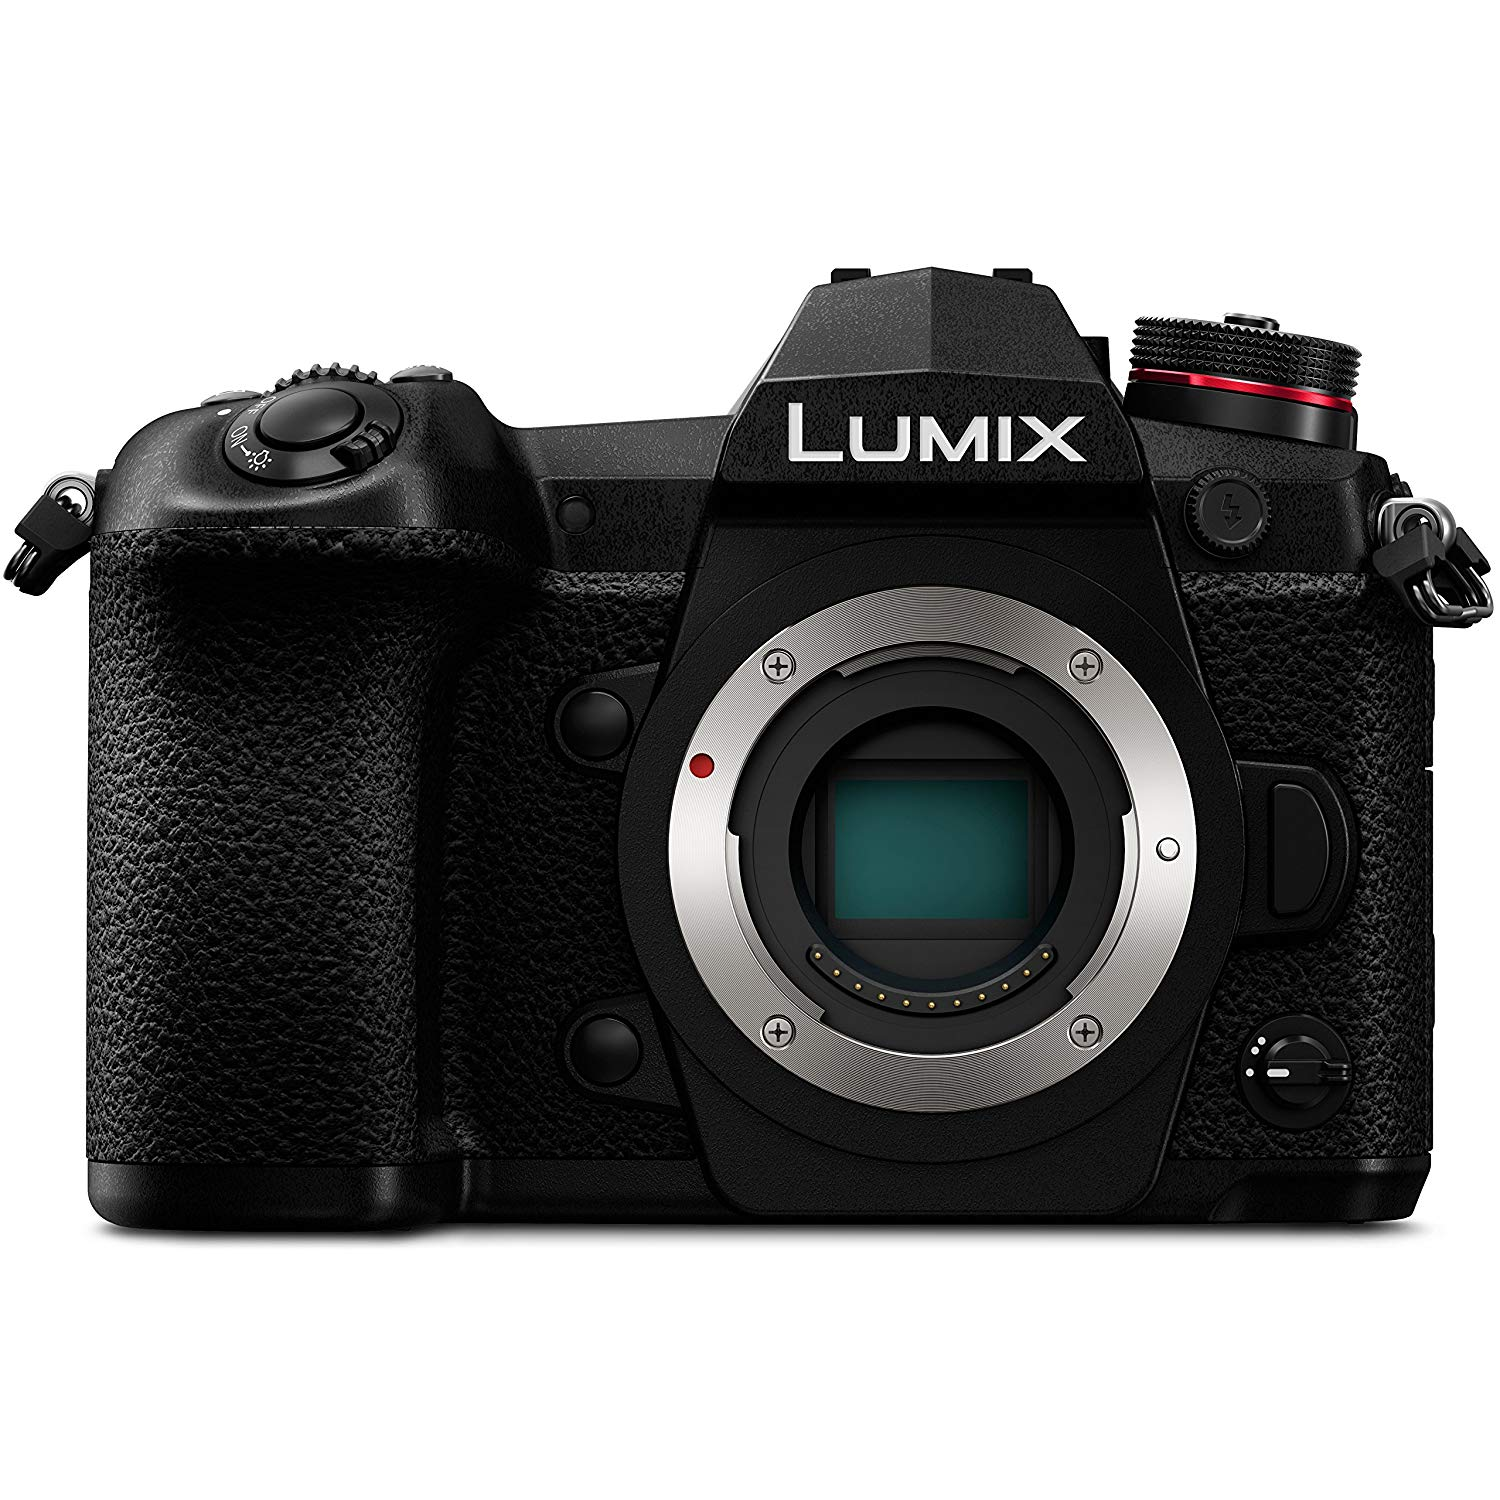 Panasonic Lumix G9 Body only $866 - Link New after 20% off Amazon Warehouse Deal